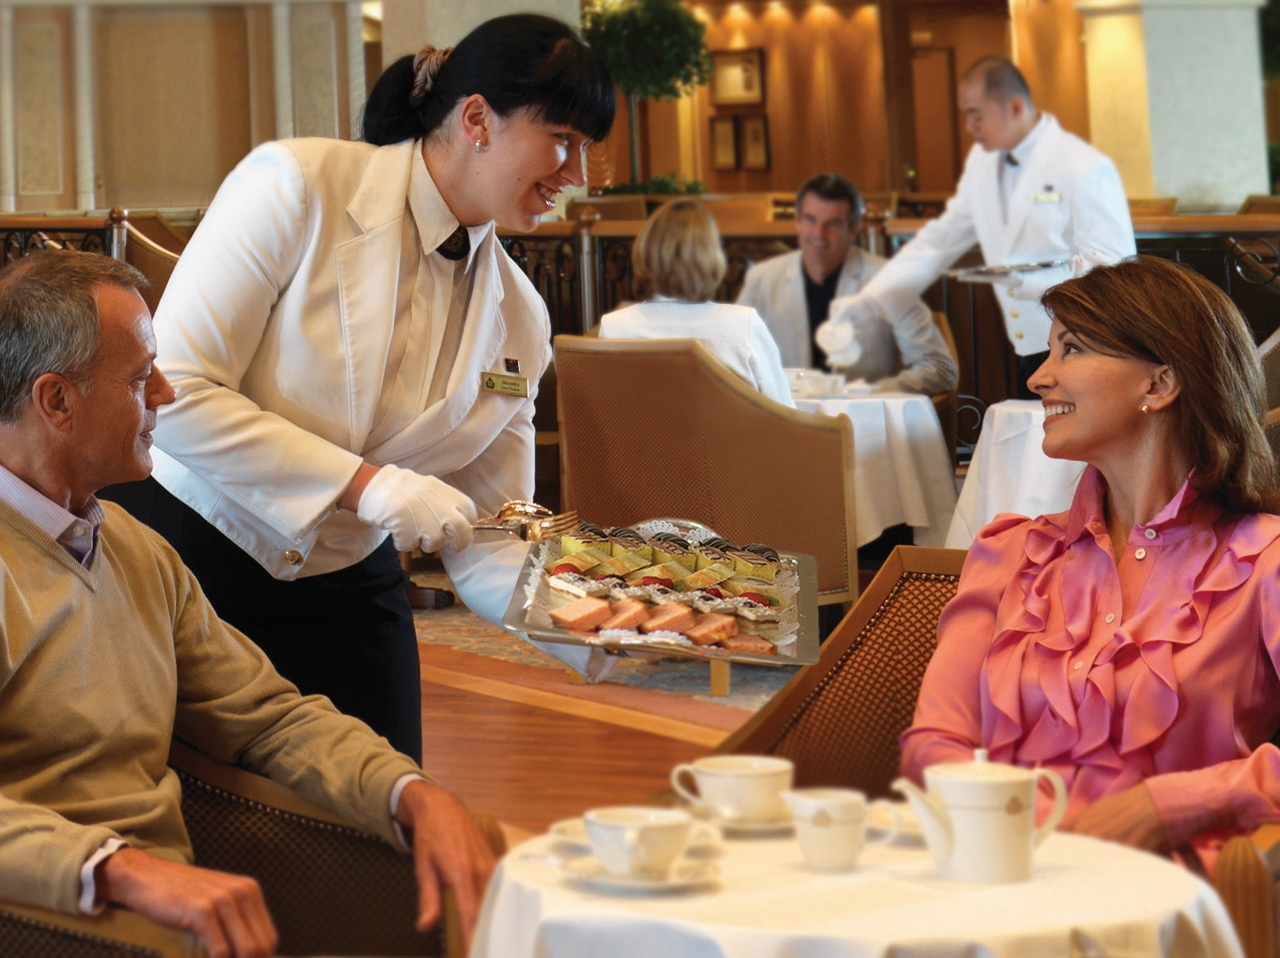 Solo travellers on Cunard can meet others for morning tea on sea days.